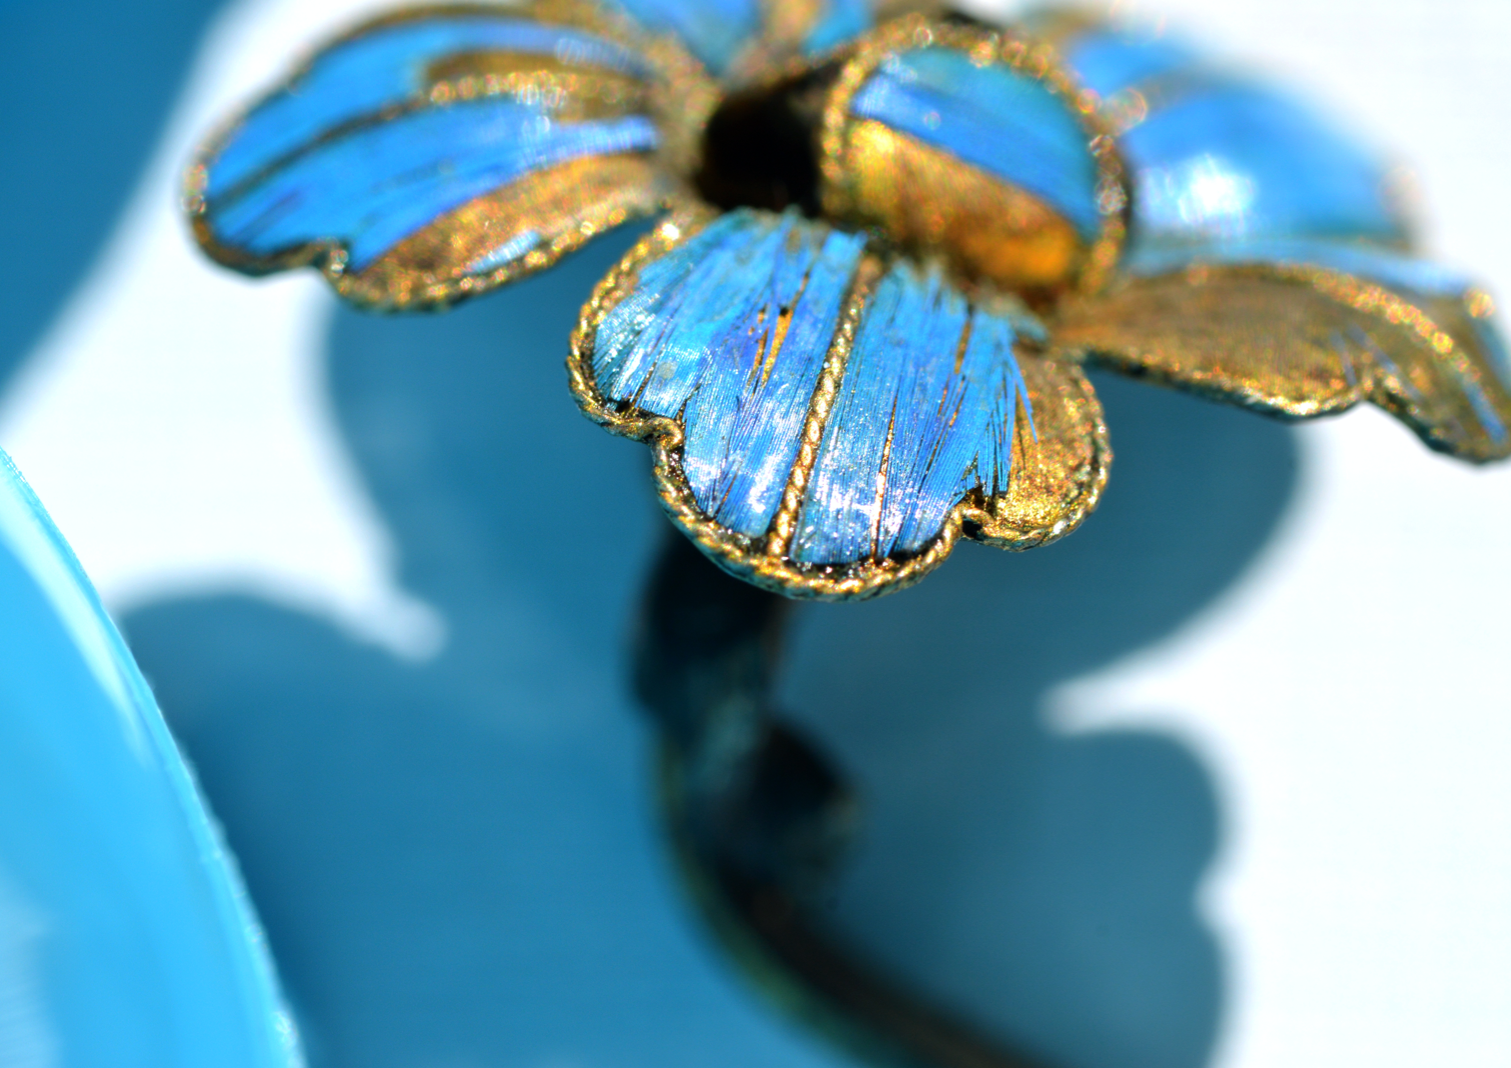 Tian-tsui jewelry made of intense blue kingfisher feather hairpin in a floral motif showing the close-up detail of the feather.